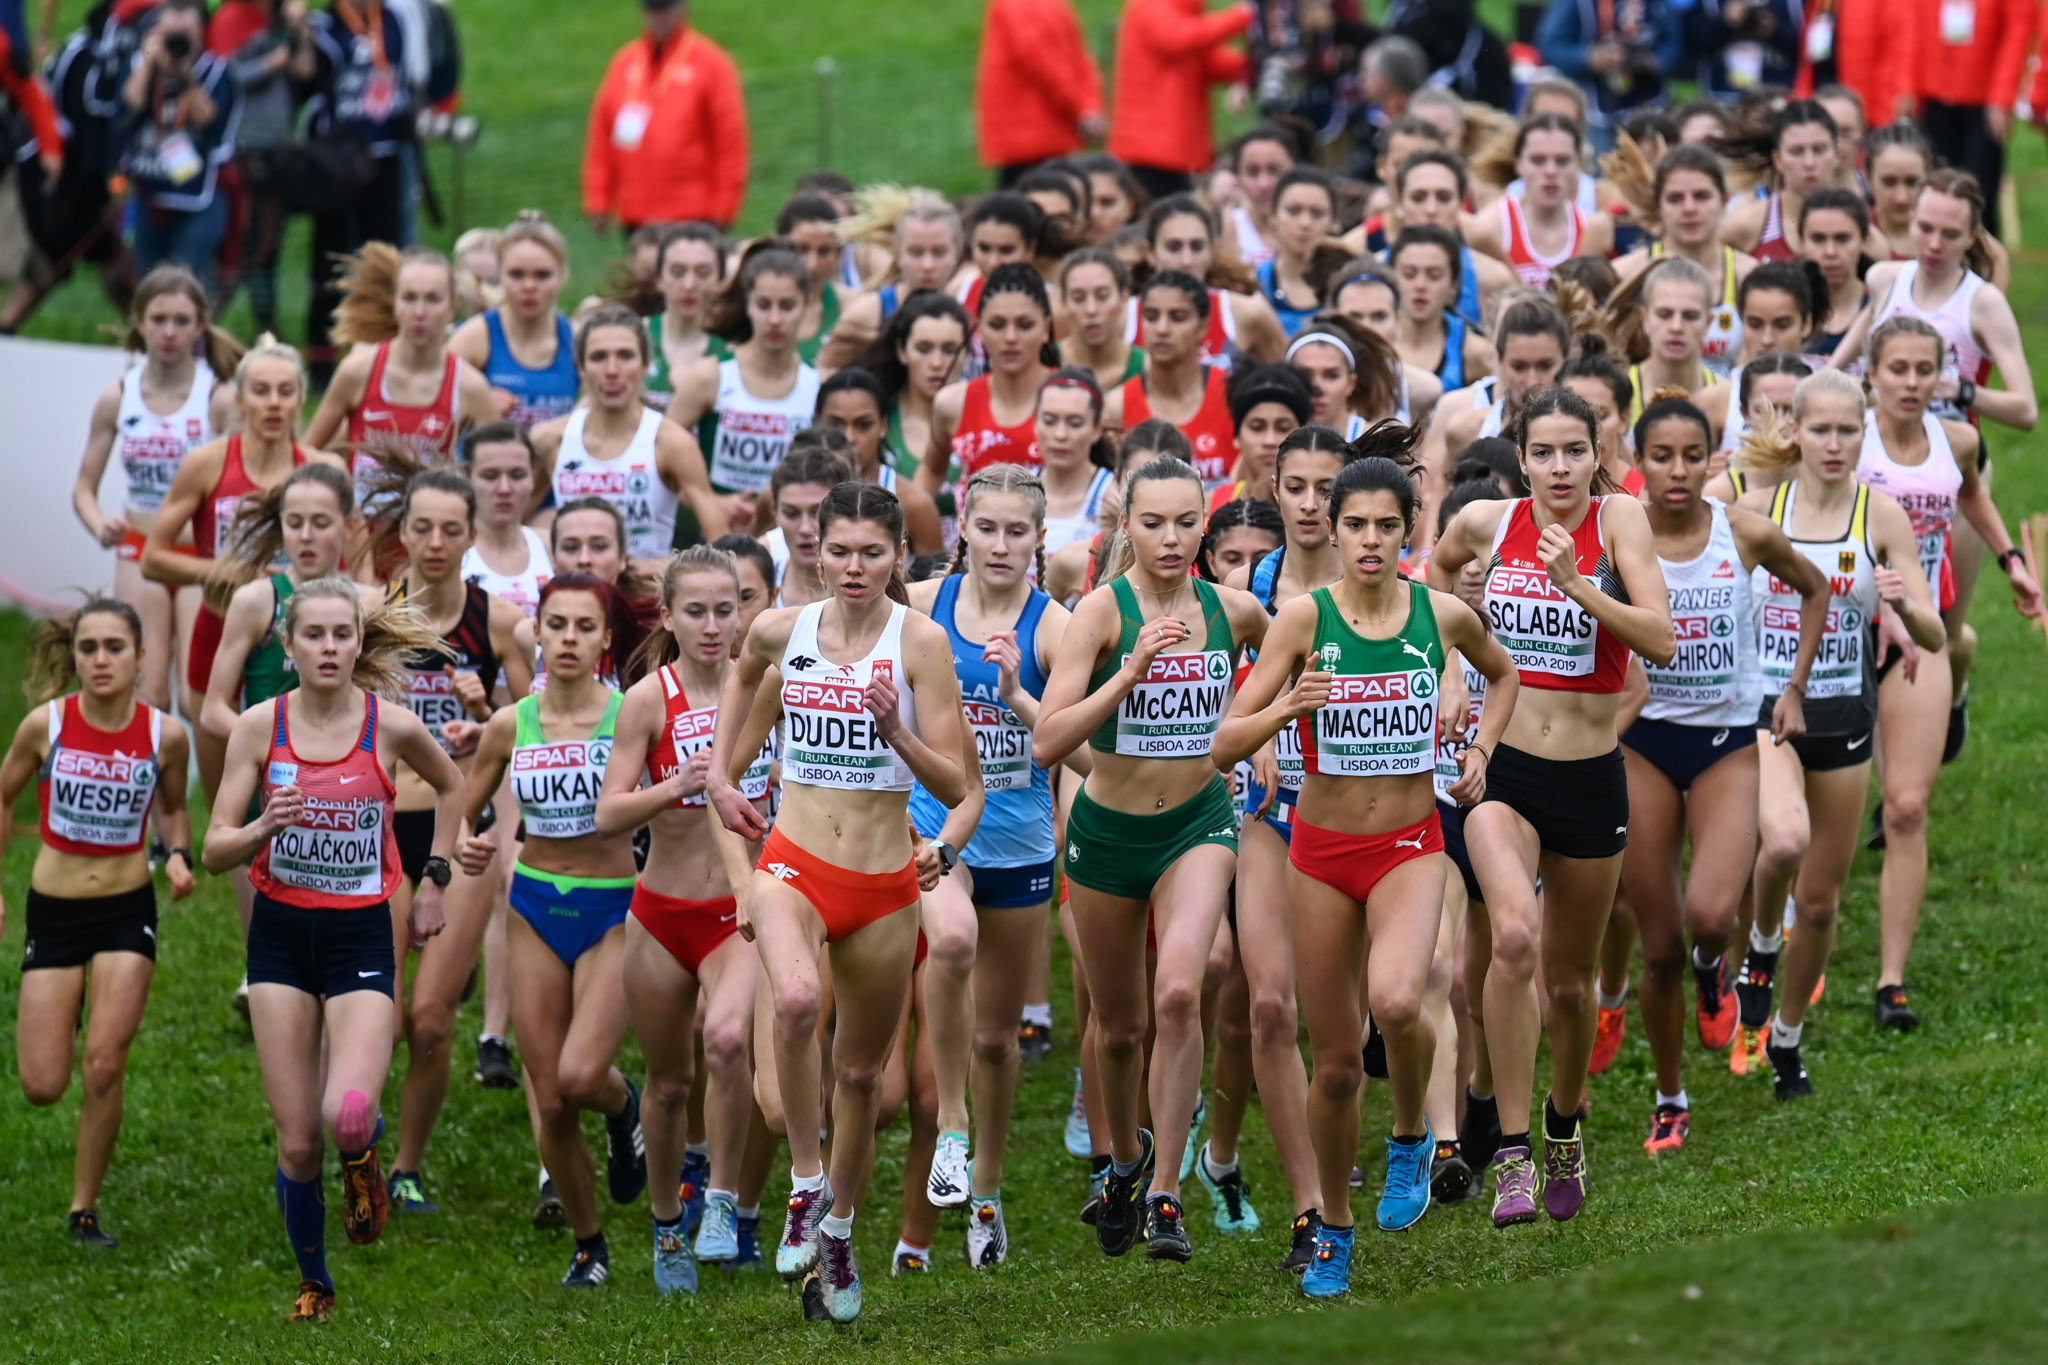 Last year's European Cross Country Championships was held in Lisbon, Portugal ©Getty Images